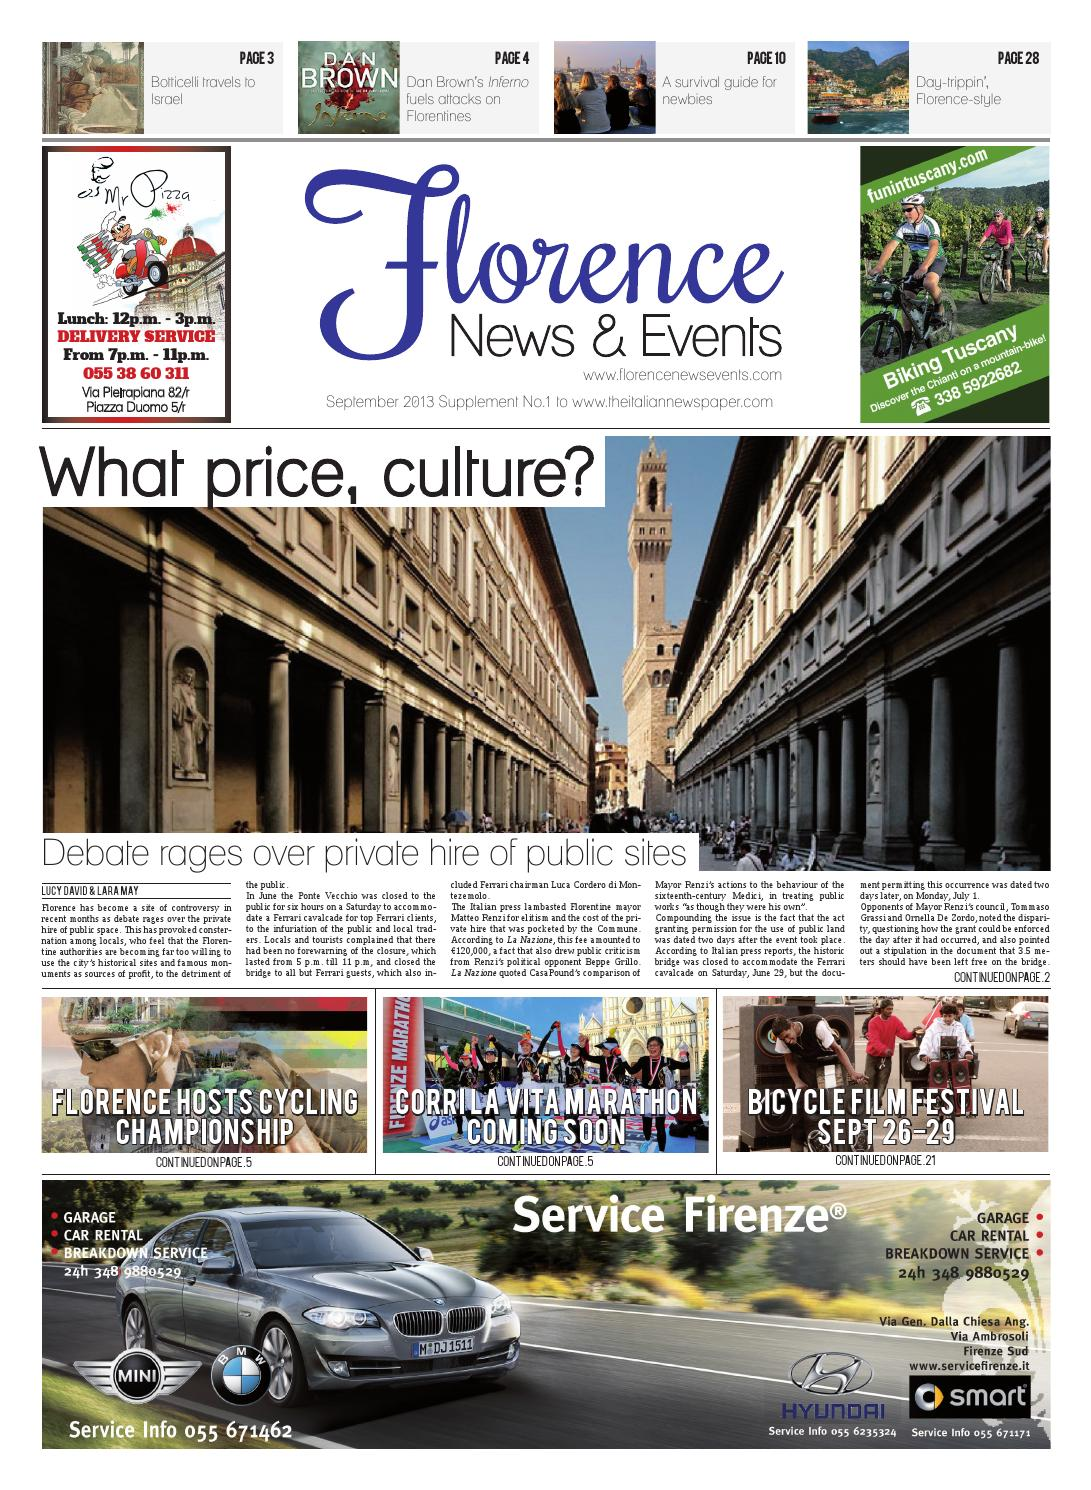 Florence News & Events Sept 13 by FLORENCENEWSEVENTS - issuu